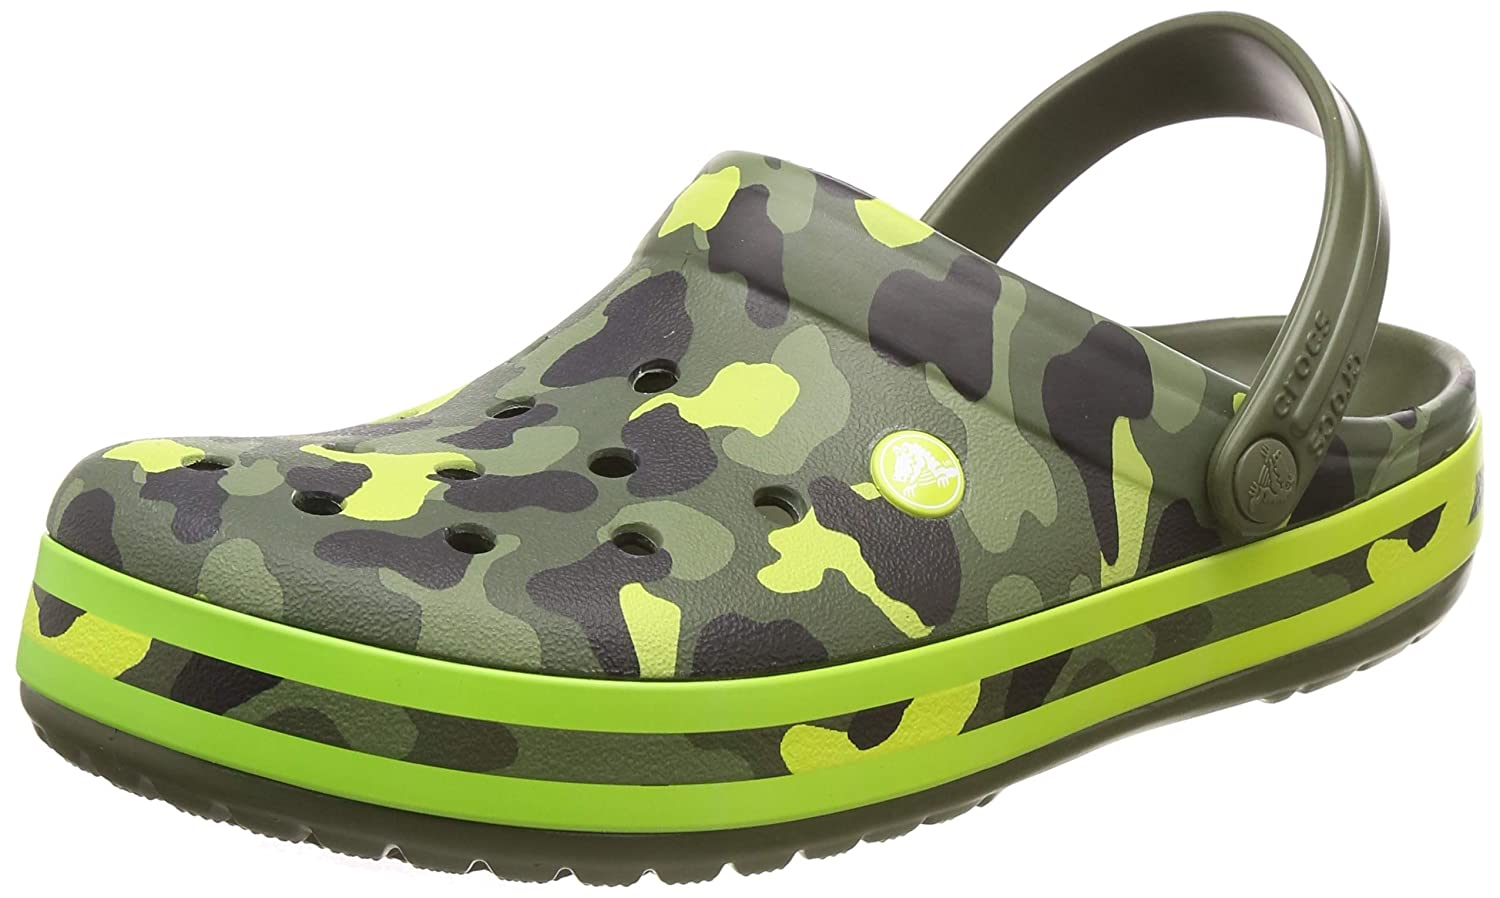 963762986 Crocs Shoes - Clogs Crocband Seasonal Graphic Clog - Army Green Citrus   Amazon.co.uk  Shoes   Bags